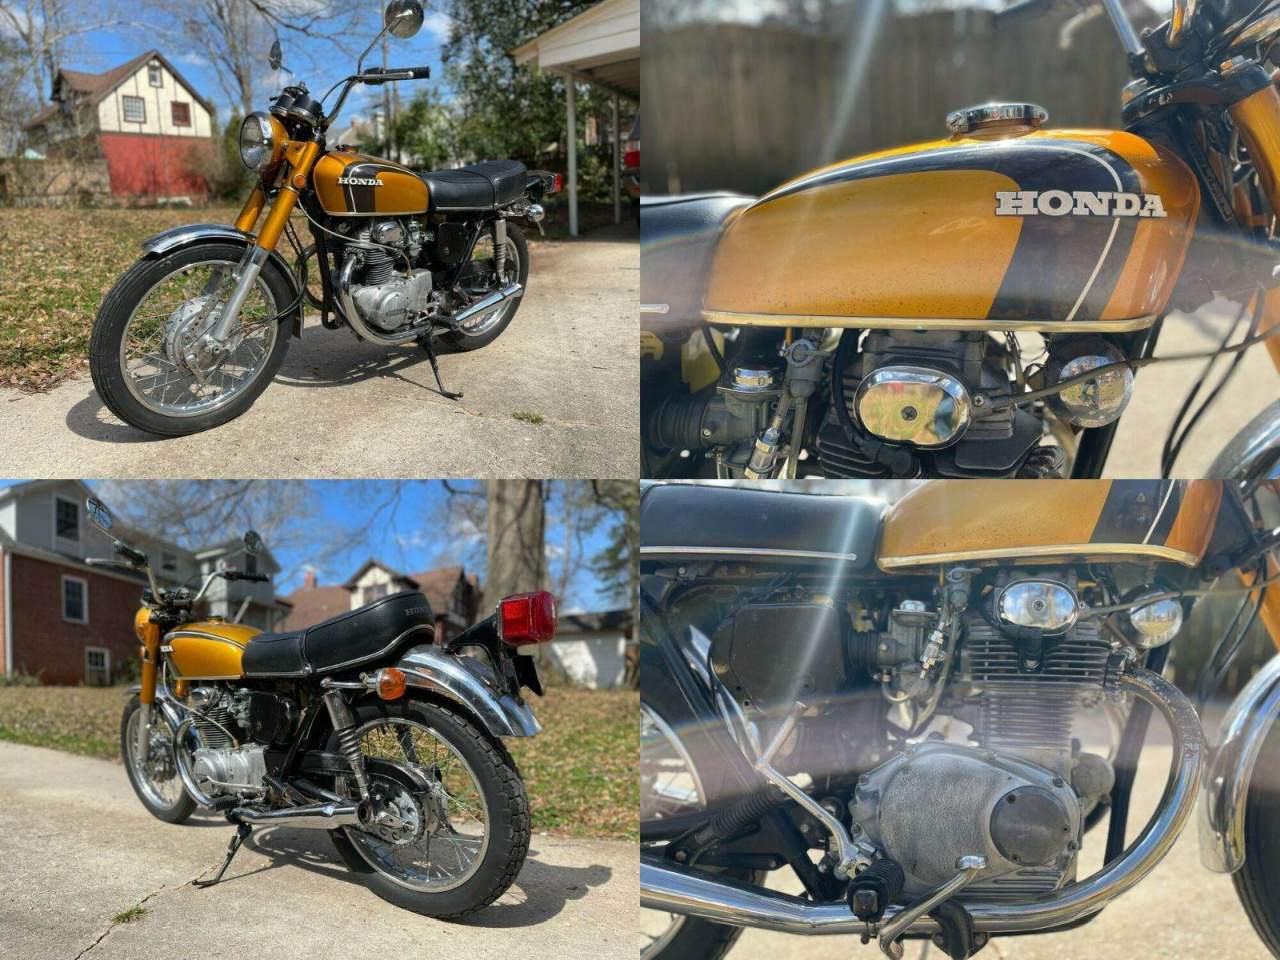 1971 Honda CB Yellow used for sale near me